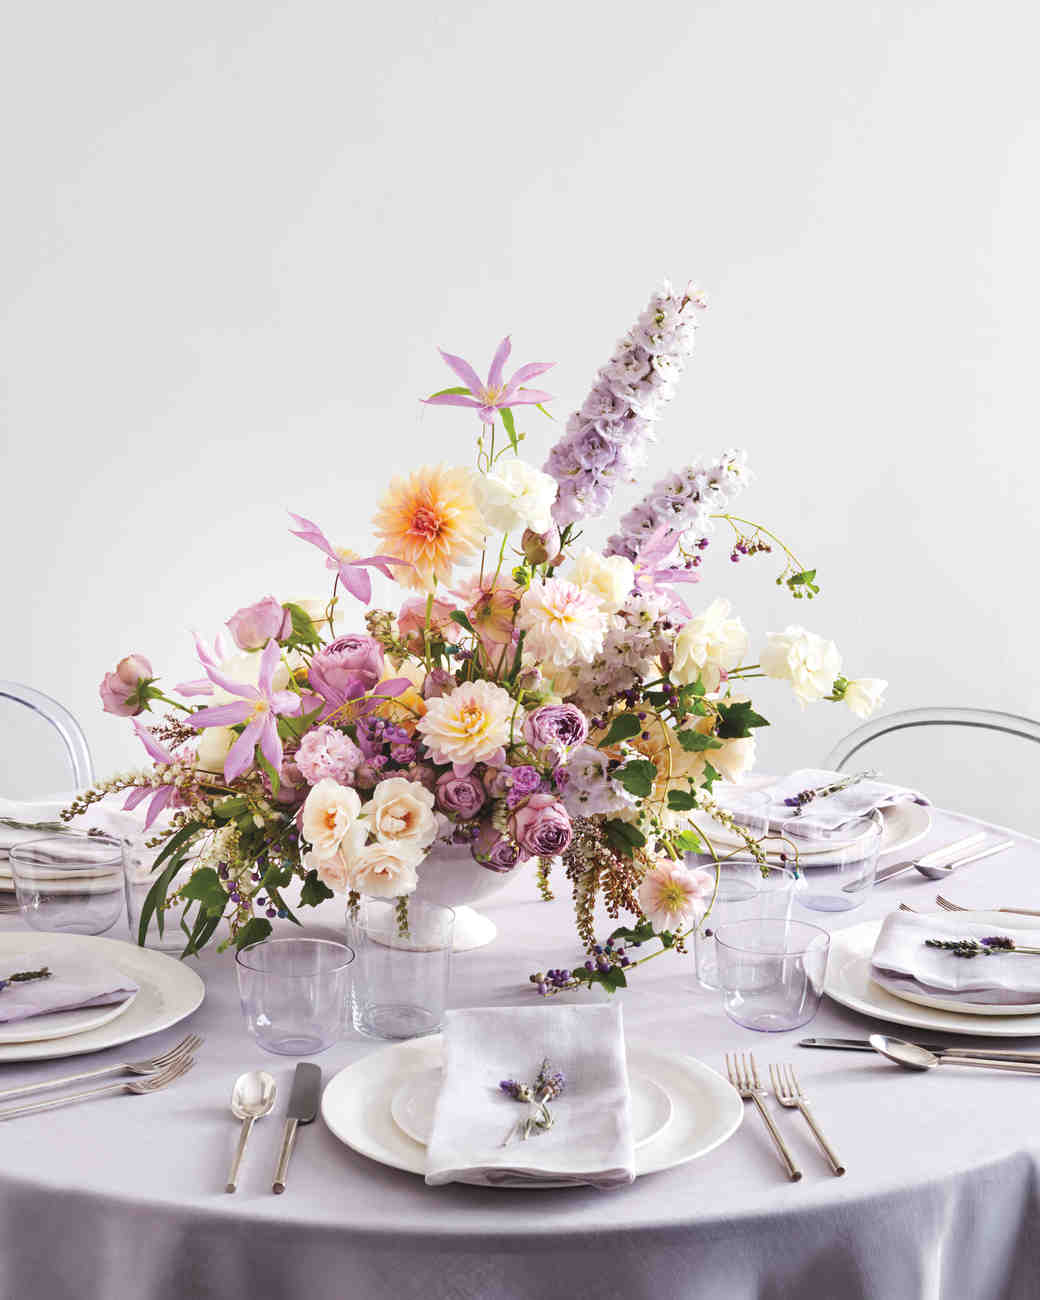 Flowers For Wedding Table Centerpieces: 23 DIY Wedding Centerpieces We Love